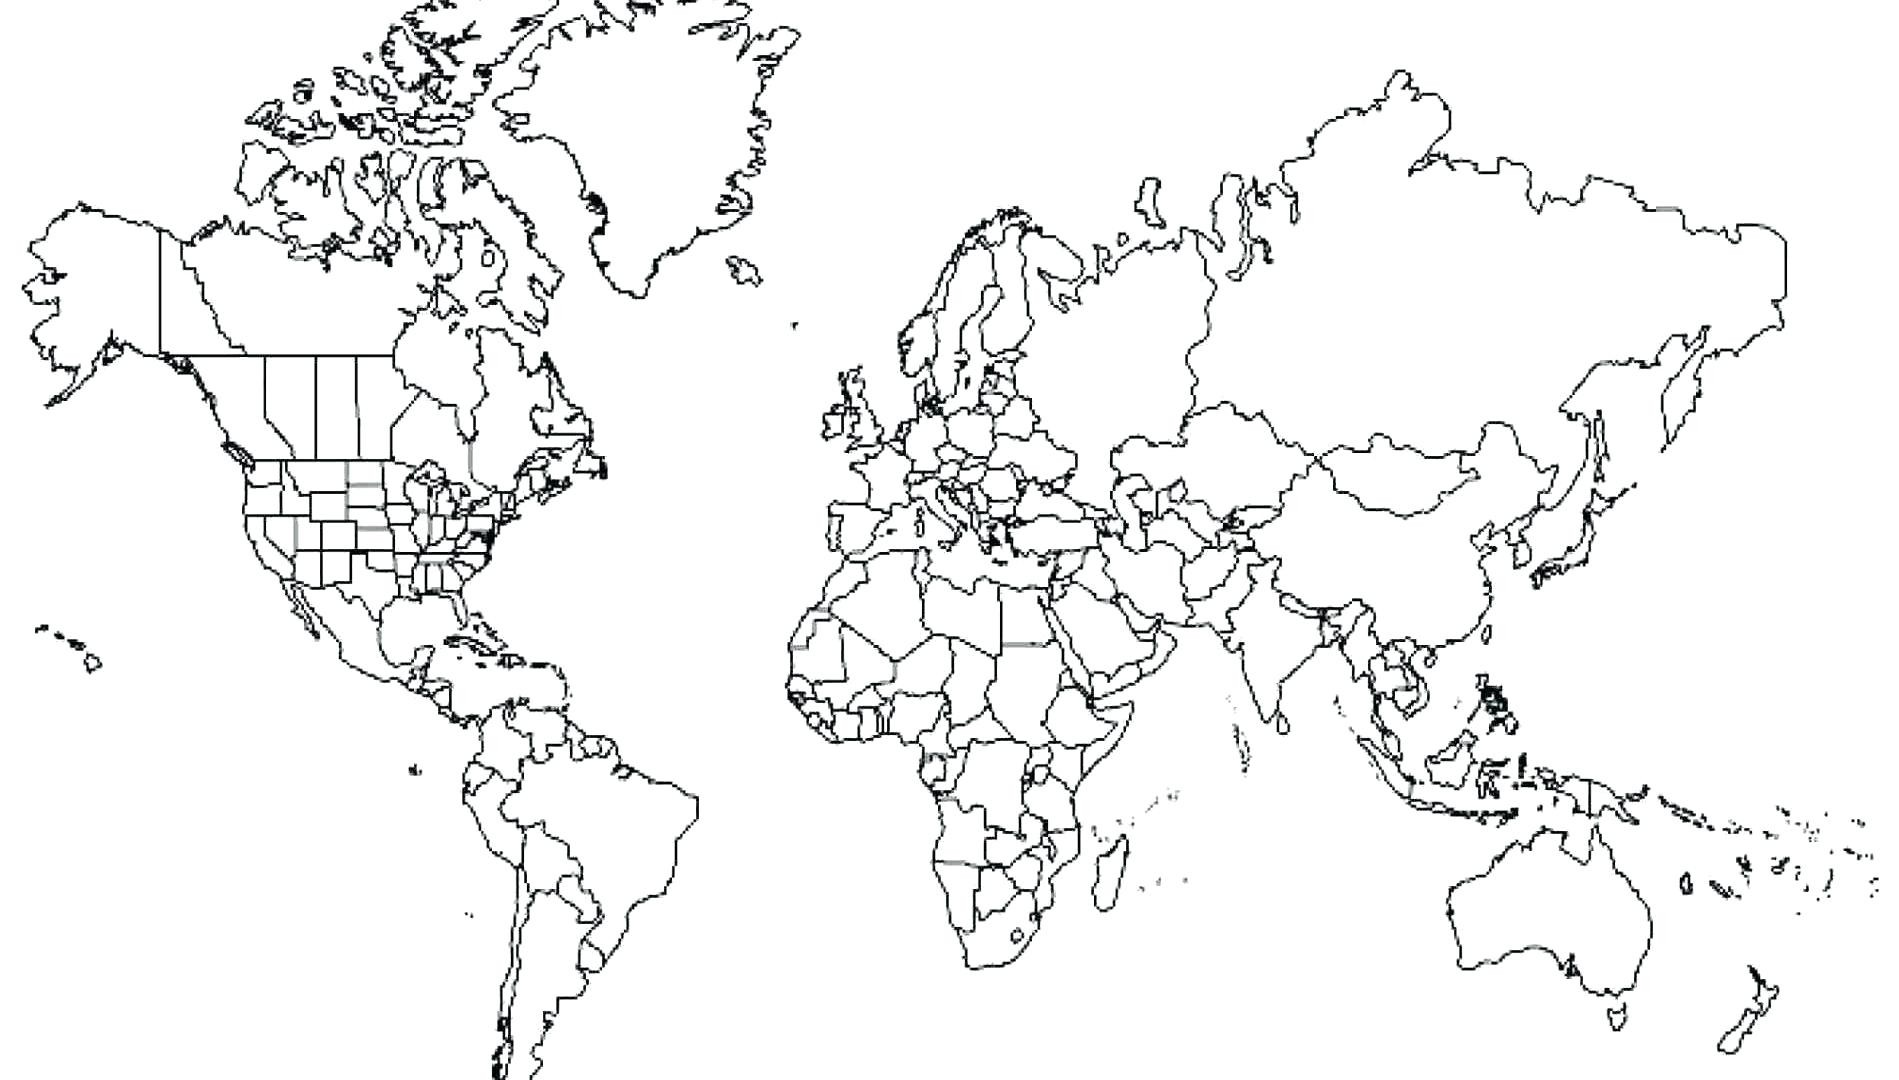 1899x1080 World Map Coloring Page Pdf Save World Map Coloring Page Pdf